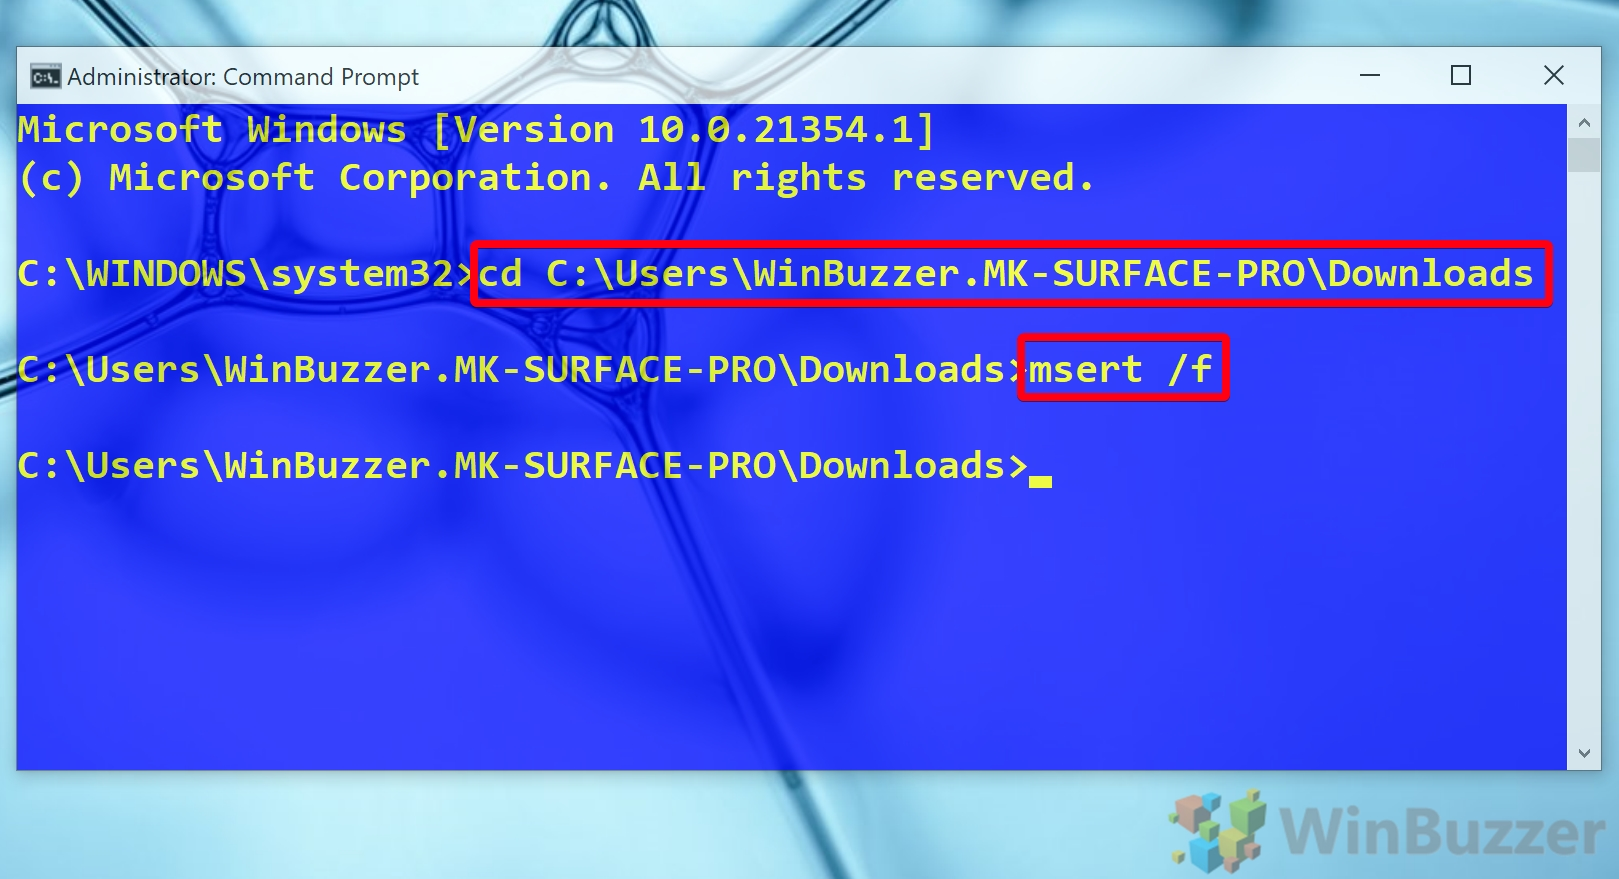 Windows 10 - Elevated Command Prompt - Type the Commands